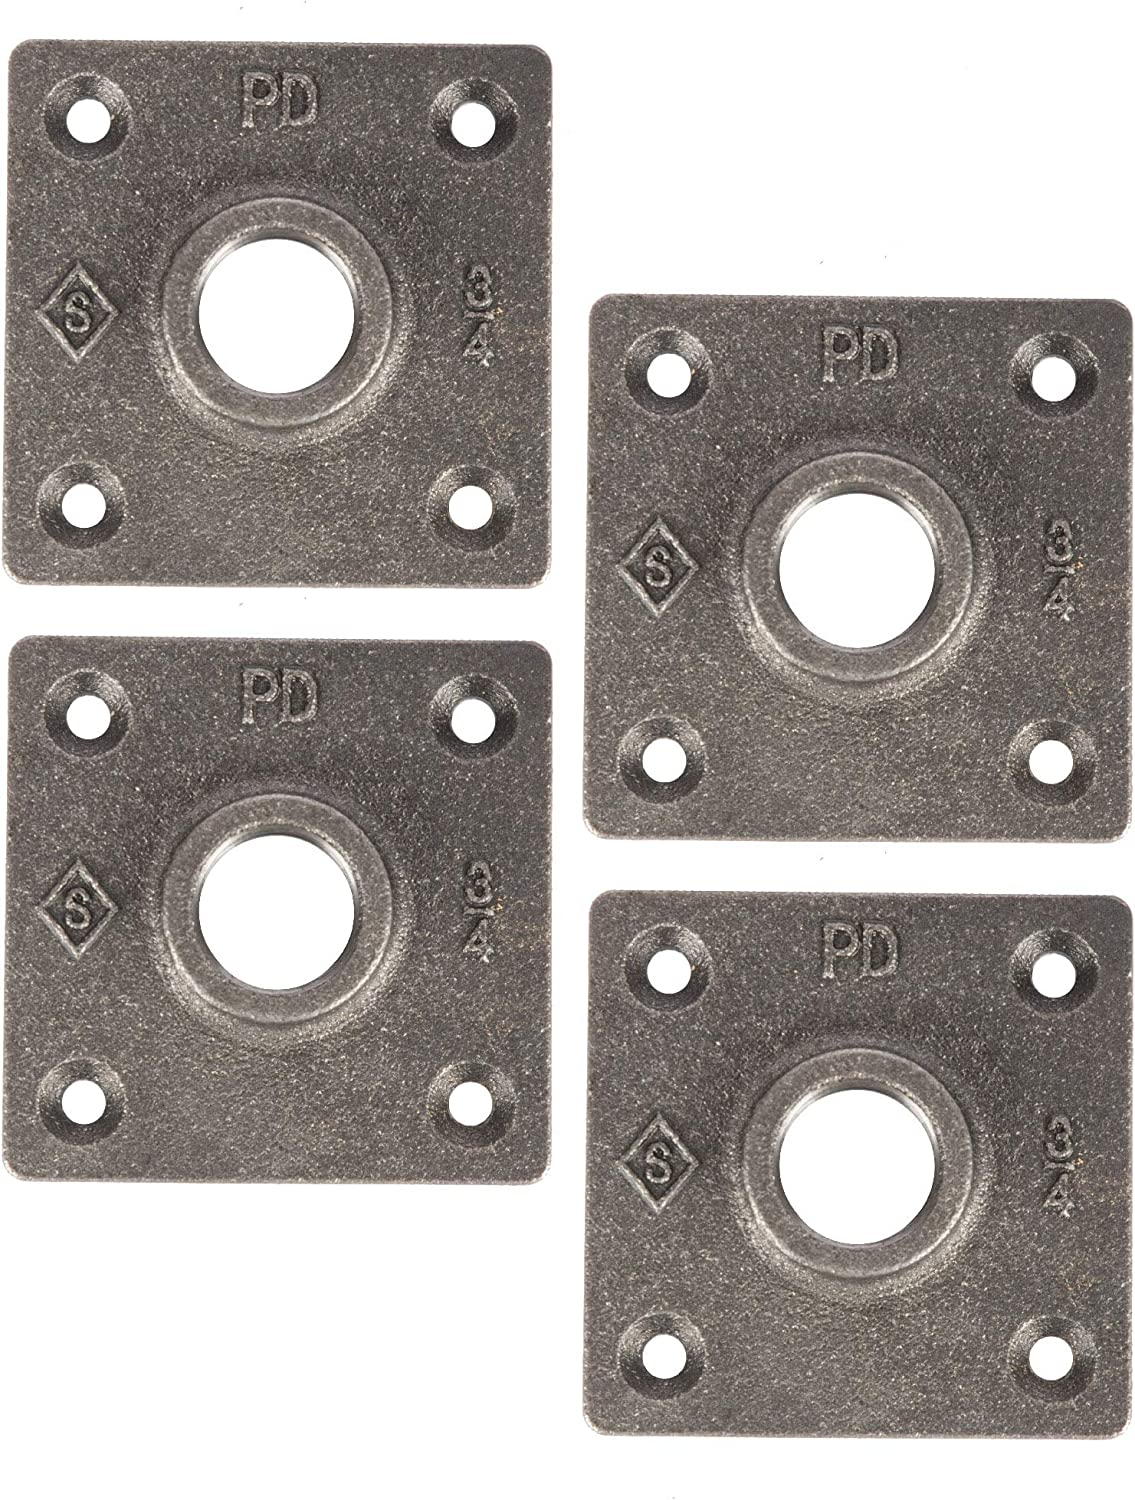 """PIPE DÉCOR 3/4"""" Industrial Flange New Square Design Half Inch Threaded Dark Grey Black Floor Flanges Malleable Cast Iron Pipes Fittings Build Vintage DIY Furniture & Shelving Heavy Duty (4) Four Pack"""